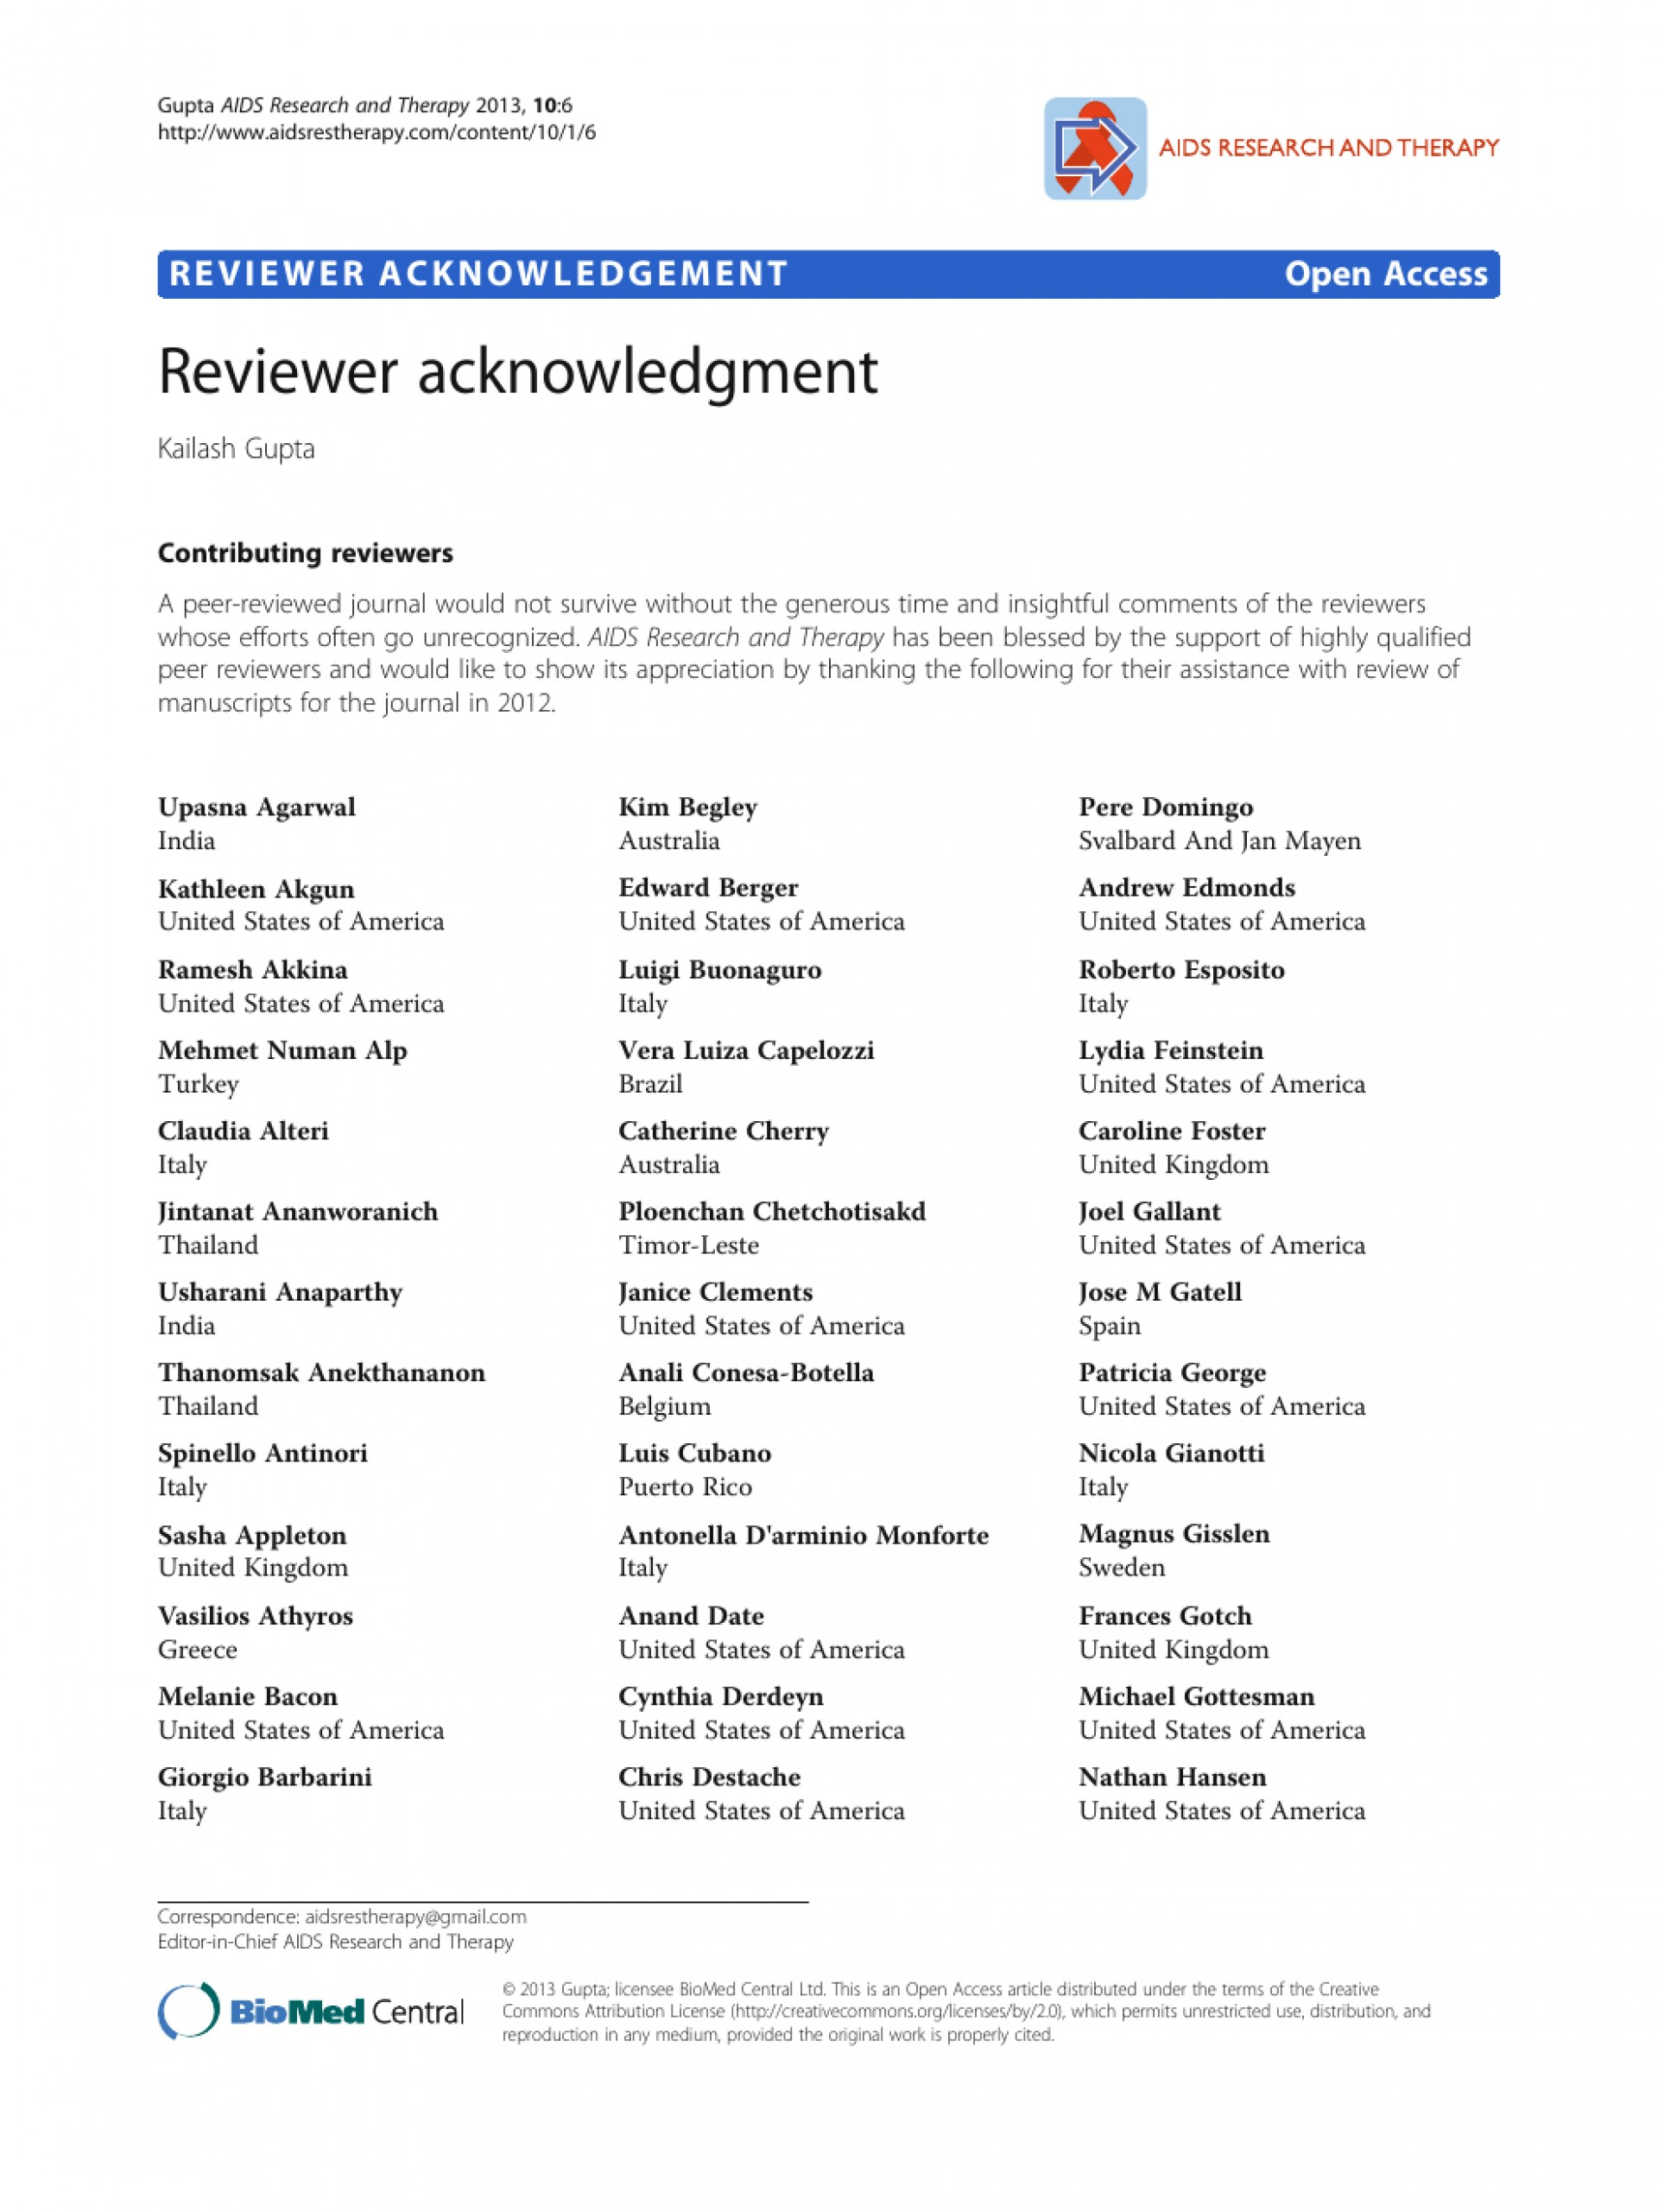 007 Acknowledgement Example For Research Paper Rare Pdf 1920